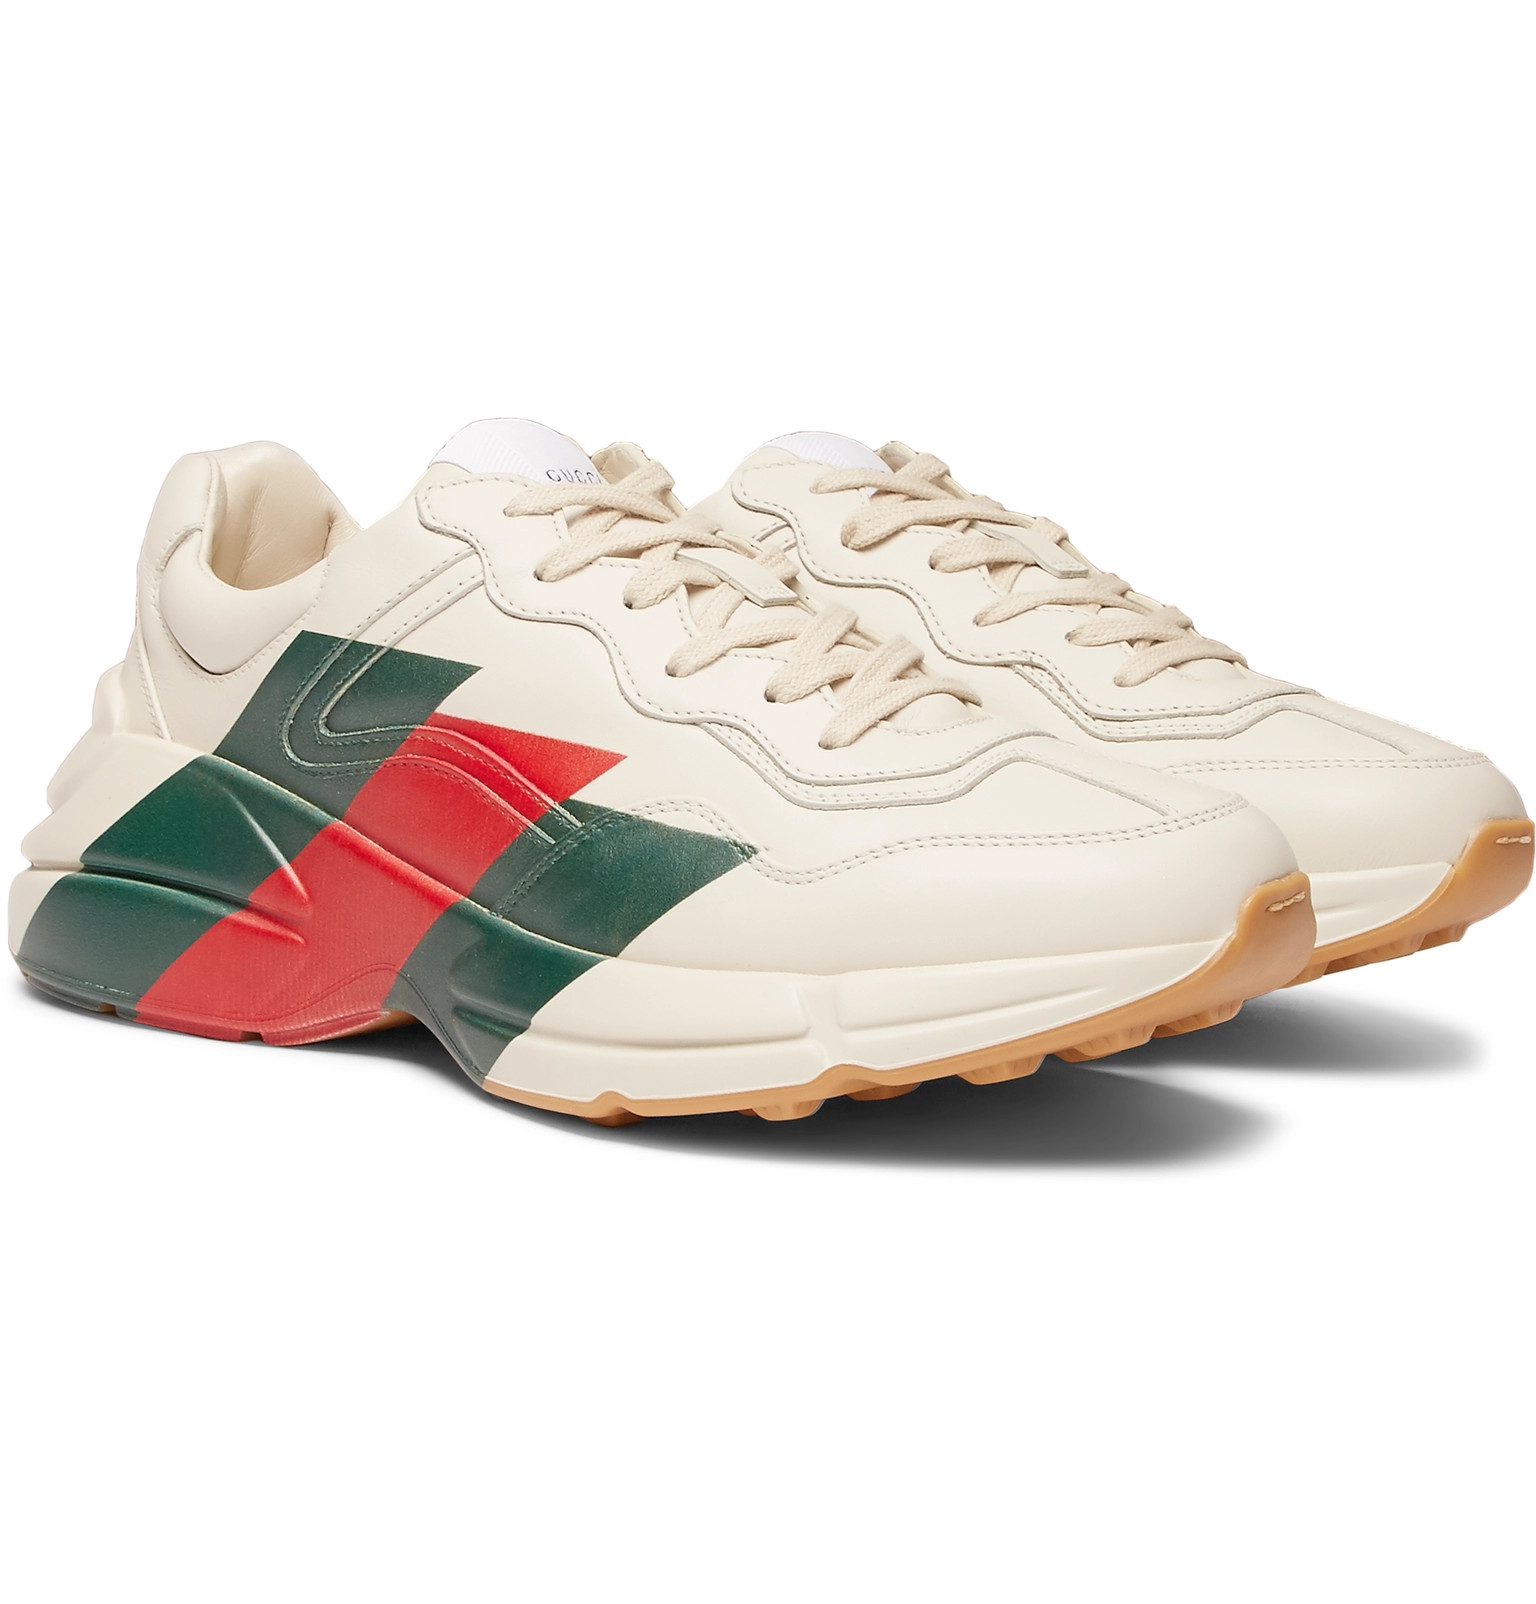 62a156485a470 Gucci - Rhyton Striped Leather Sneakers